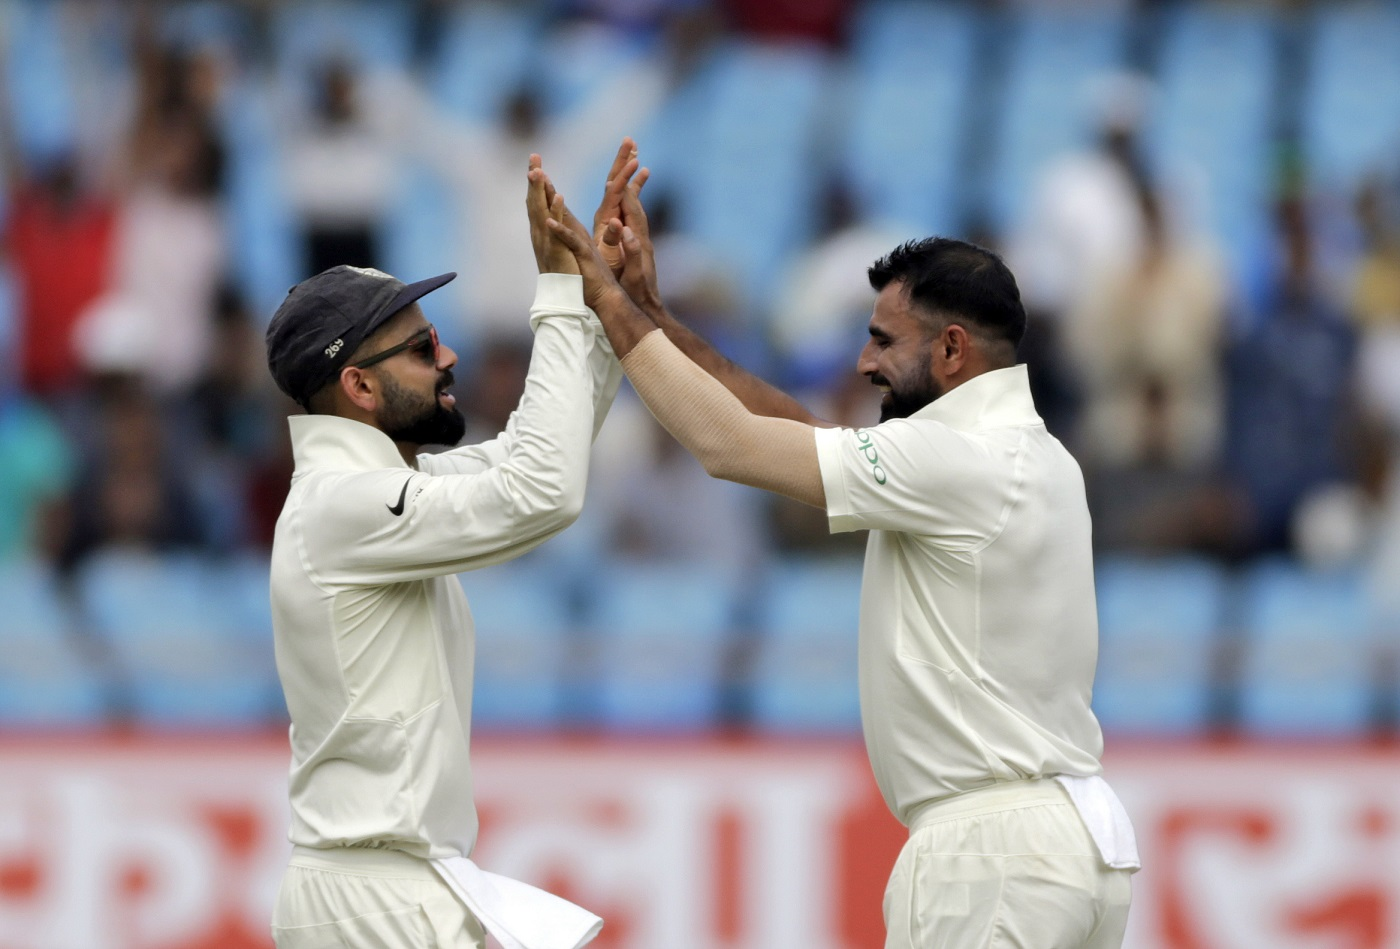 India vs Windies 2018: 1st Test, Day 2 - Review 1